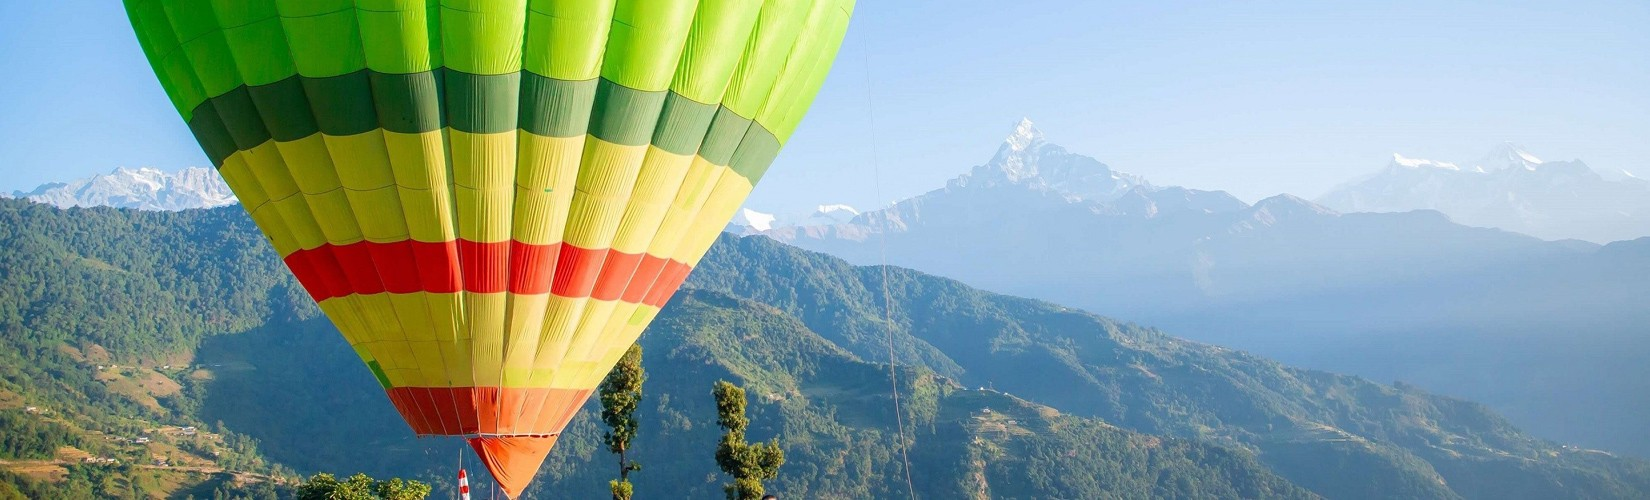 balloon in Nepal in pokhara